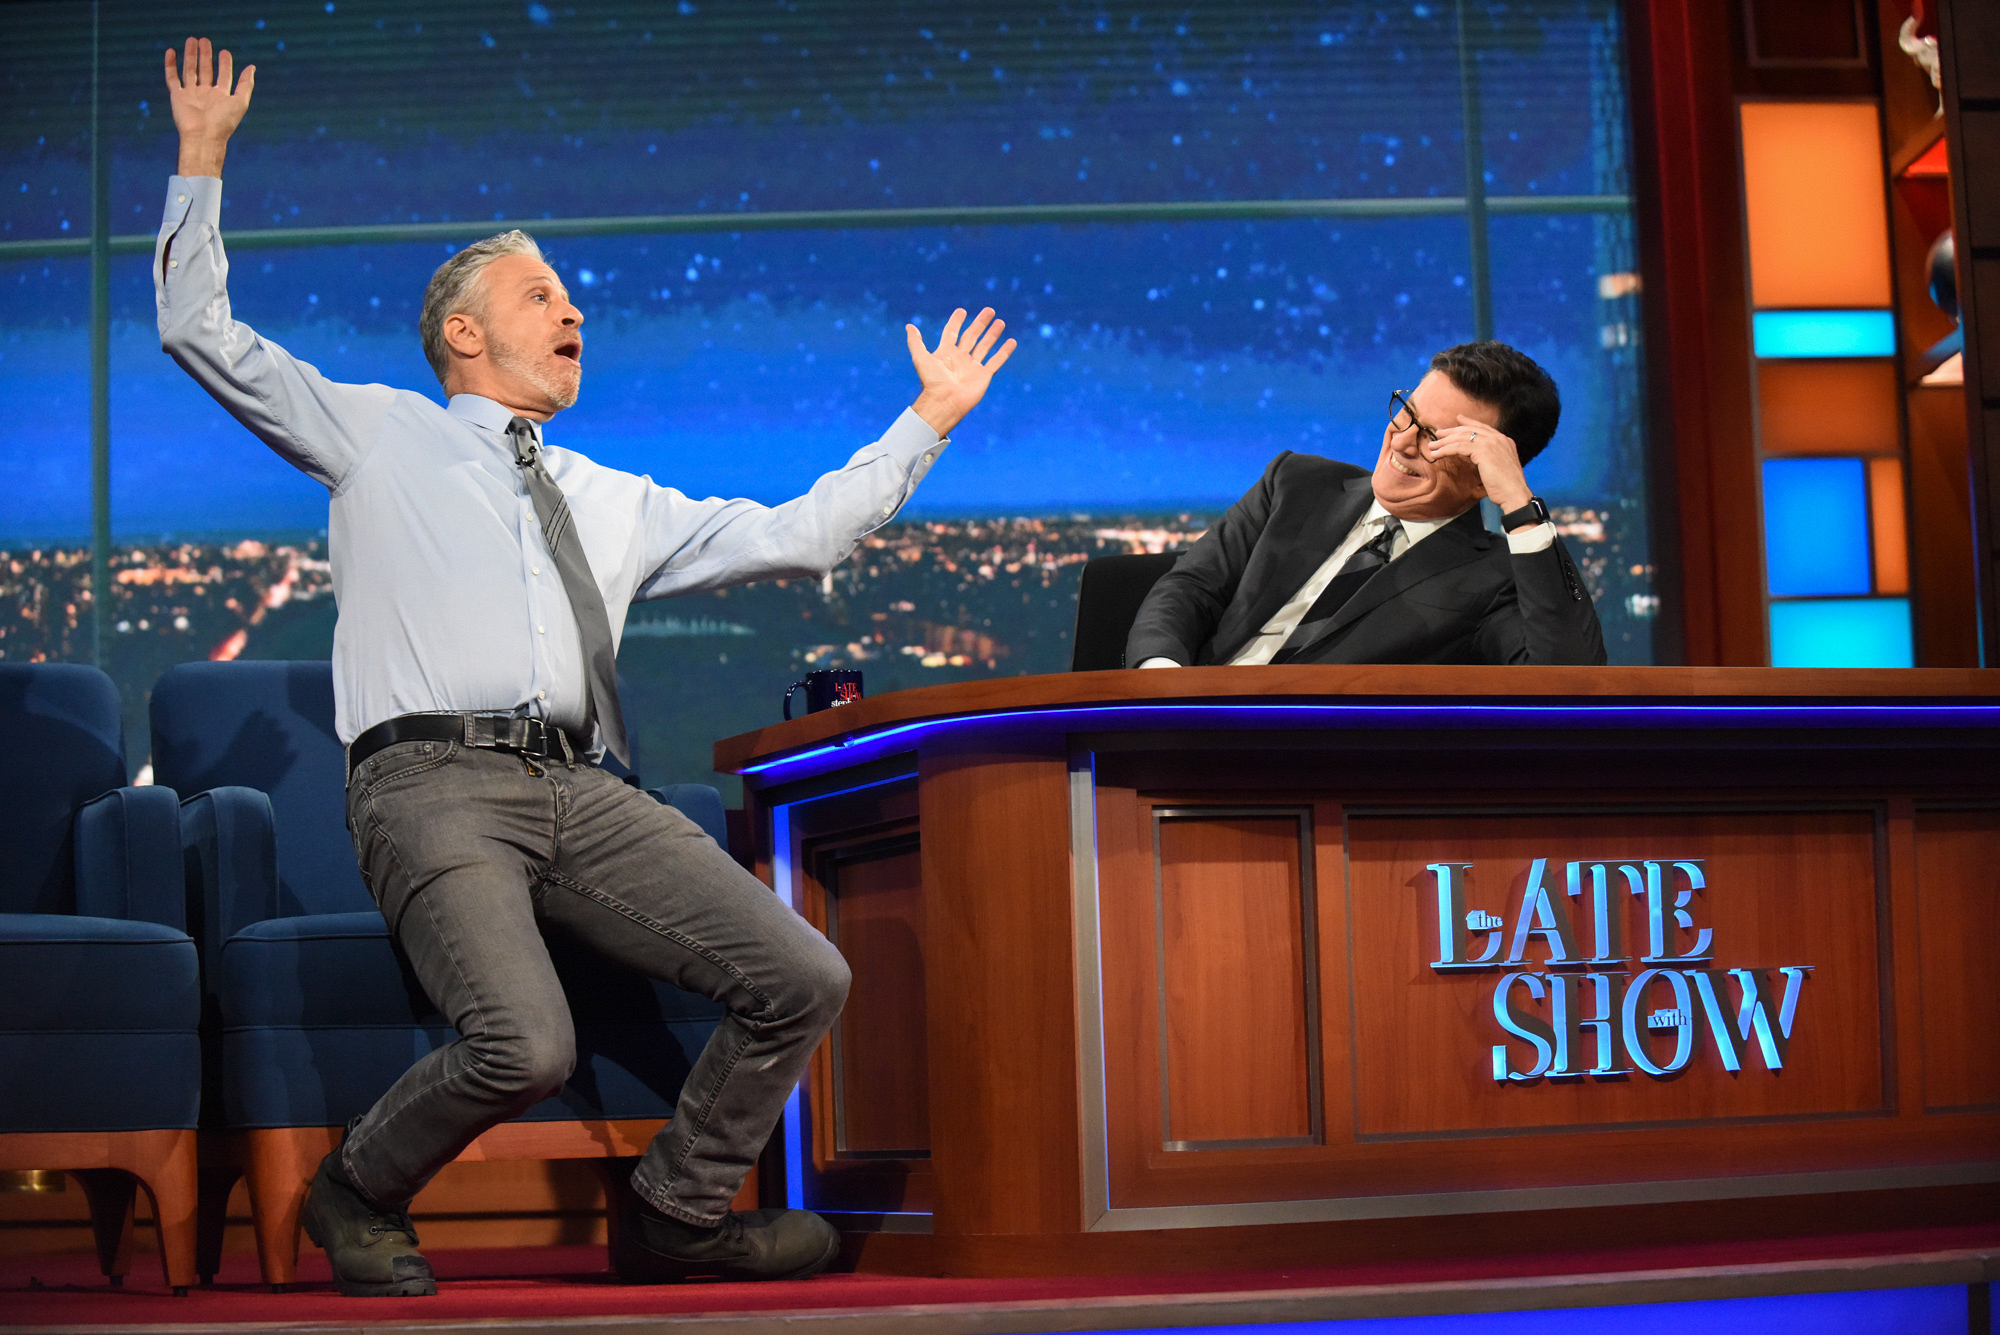 Jon Stewart struggles to get comfortable on the other side of the desk.